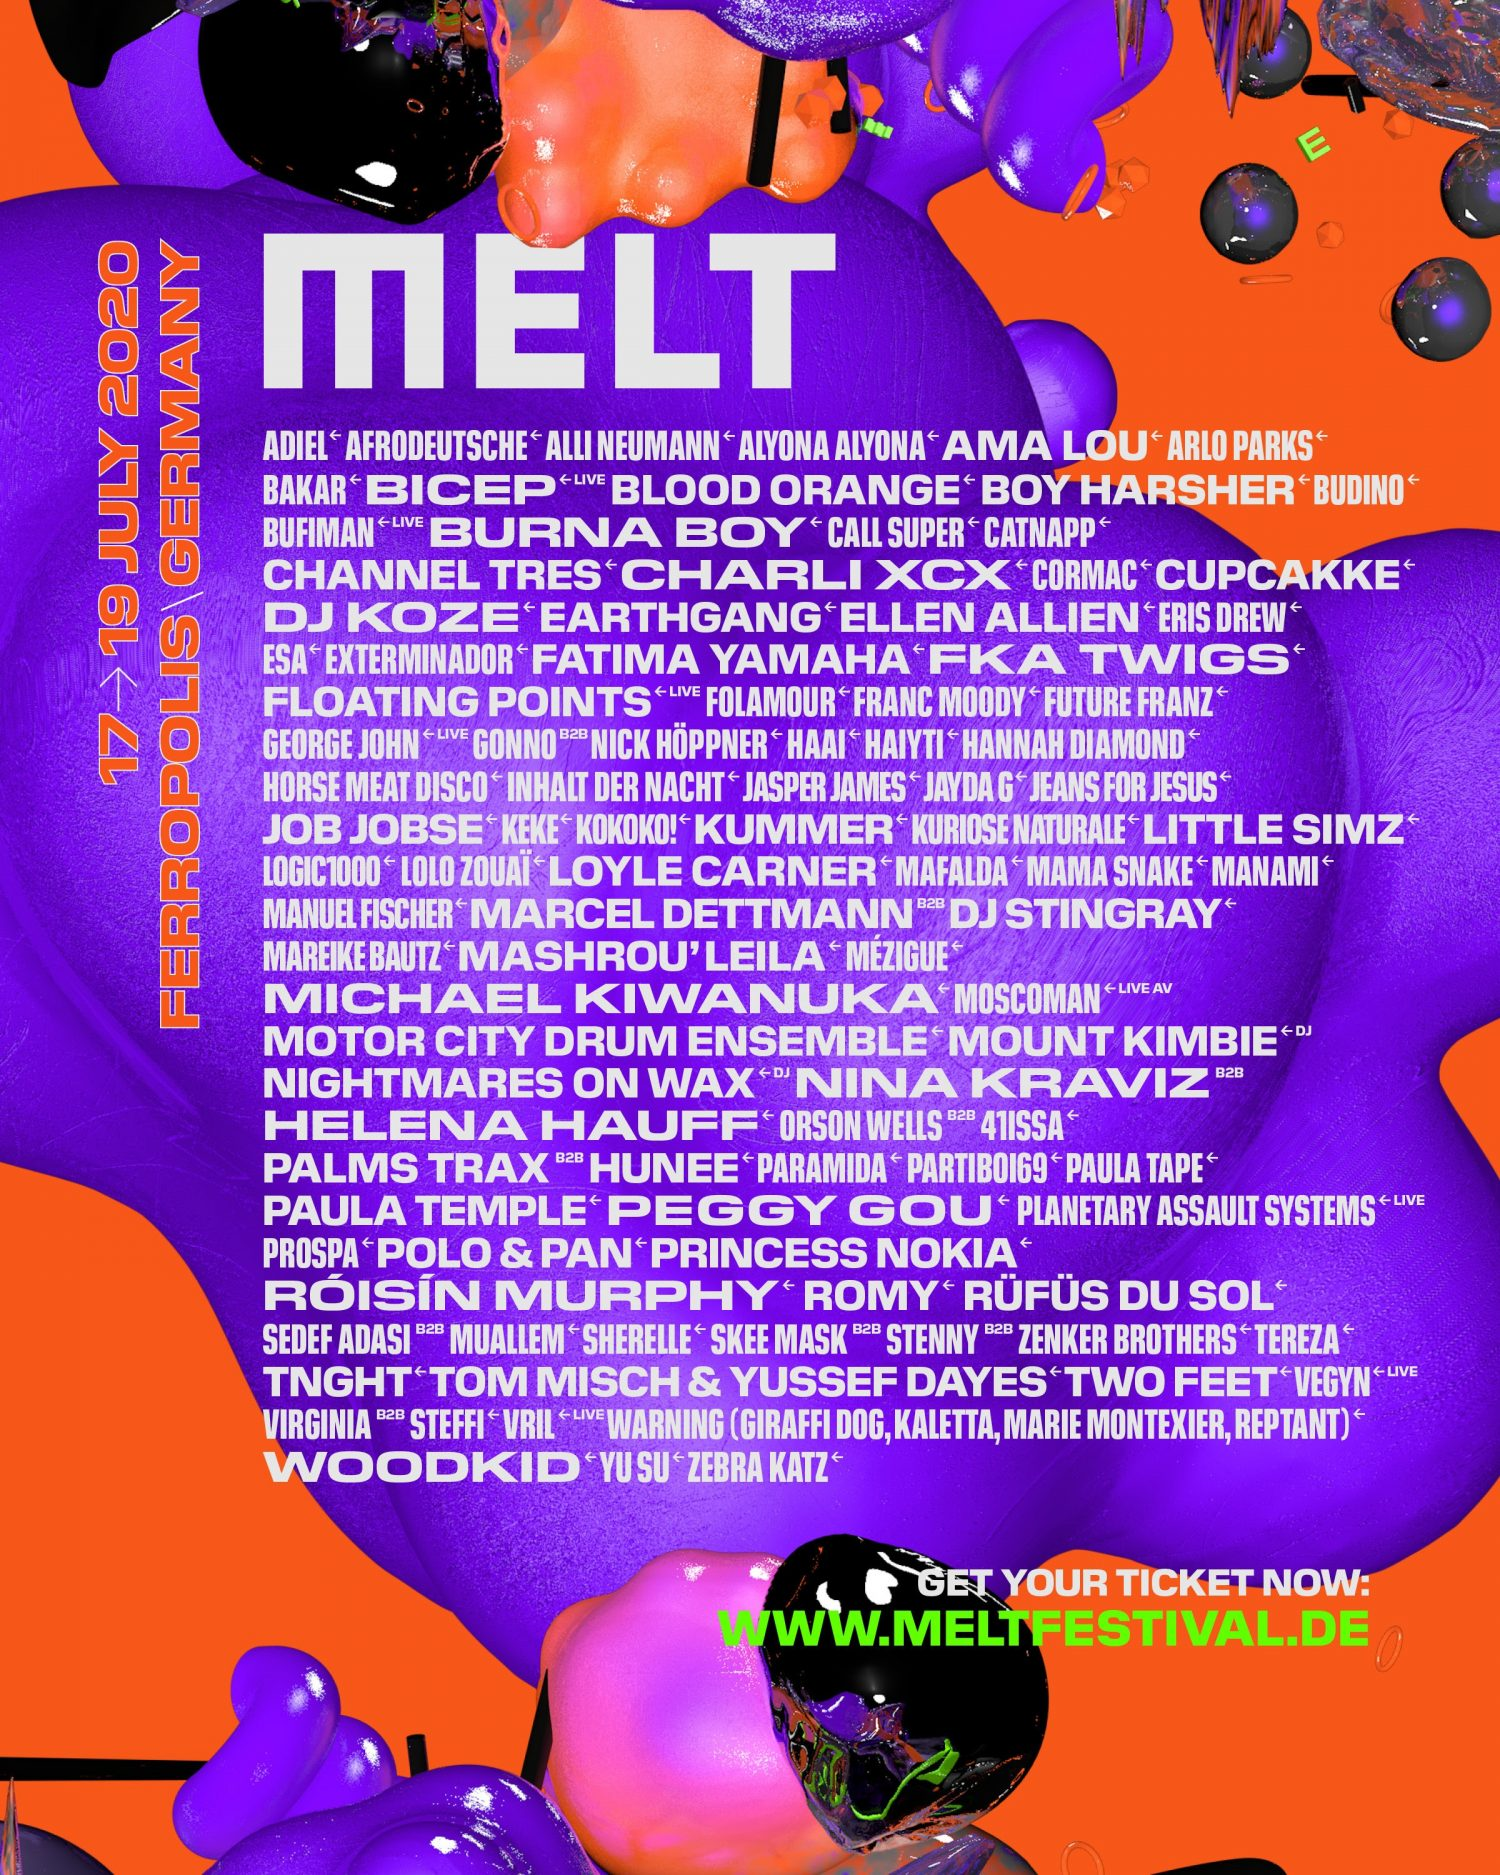 German festival Melt has announced FKA twigs, Charli XCX and more